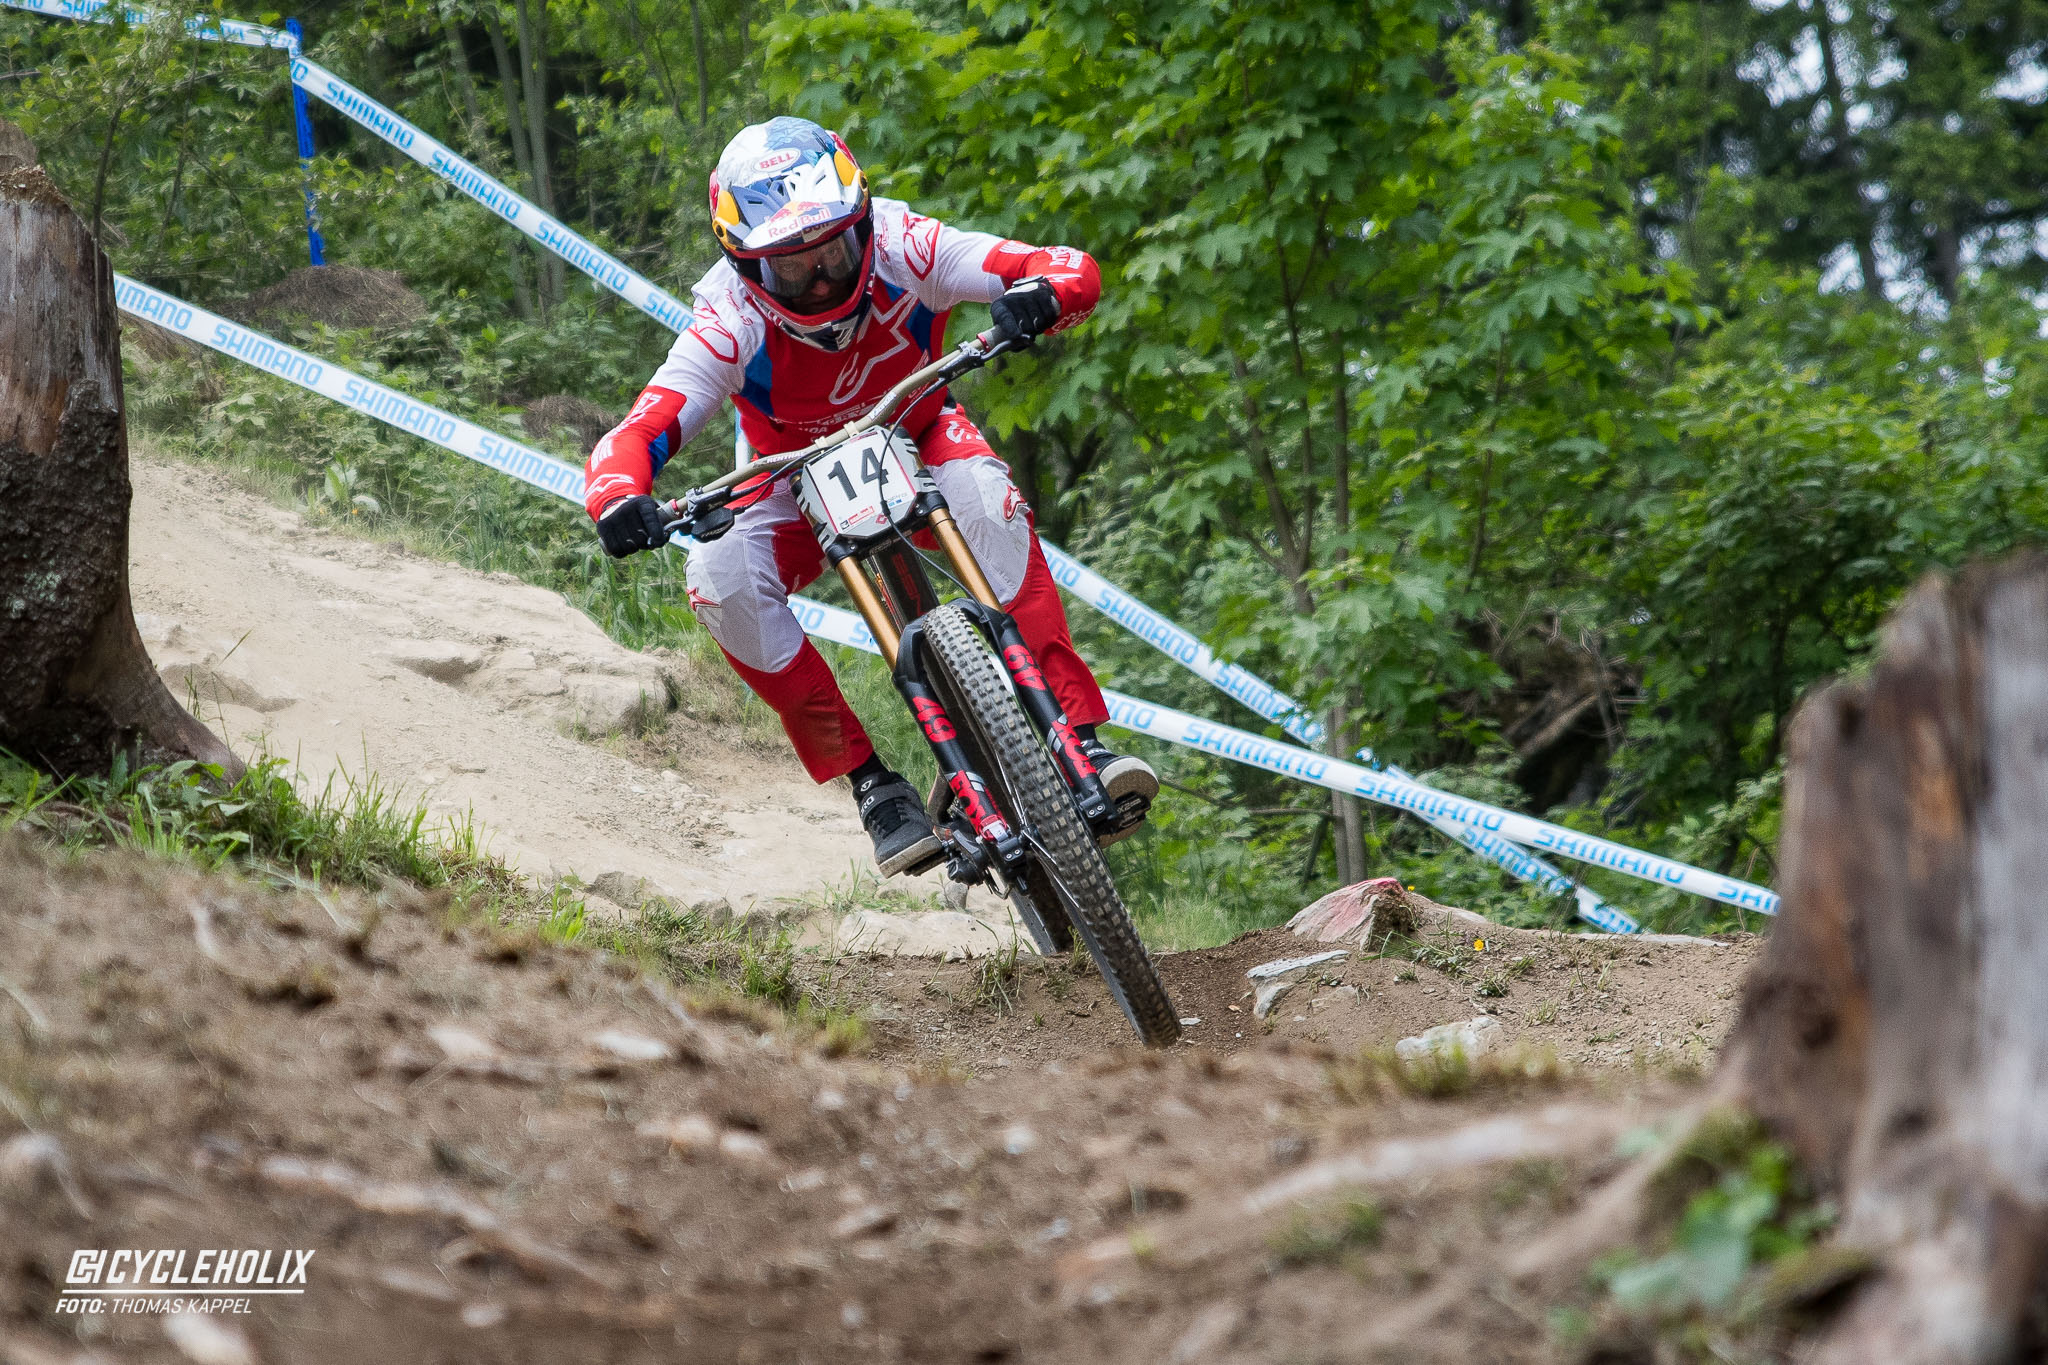 2019 Downhill Worldcup Leogang Finale Action QA 18 Cycleholix